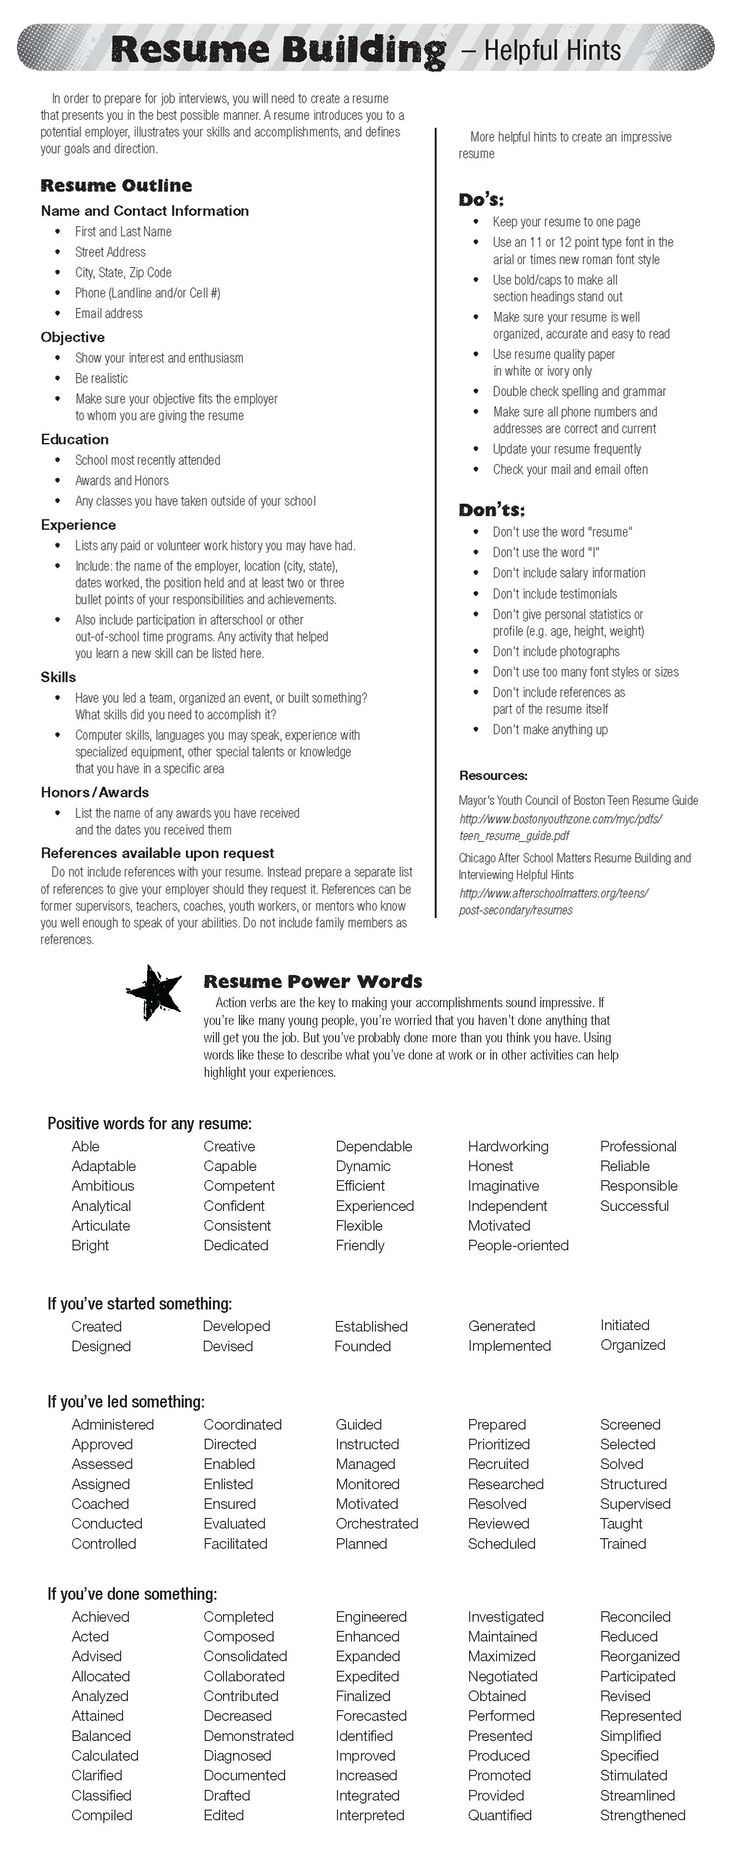 Opposenewapstandardsus  Surprising  Ideas About Resume On Pinterest  Cv Format Resume  With Luxury Check Out Todays Resume Building Tips Resume Resumepowerwords With Charming Babysitter On Resume Also Sample Resume High School In Addition Forklift Resume Samples And Adjectives To Use In A Resume As Well As Food Service Director Resume Additionally Deckhand Resume From Pinterestcom With Opposenewapstandardsus  Luxury  Ideas About Resume On Pinterest  Cv Format Resume  With Charming Check Out Todays Resume Building Tips Resume Resumepowerwords And Surprising Babysitter On Resume Also Sample Resume High School In Addition Forklift Resume Samples From Pinterestcom